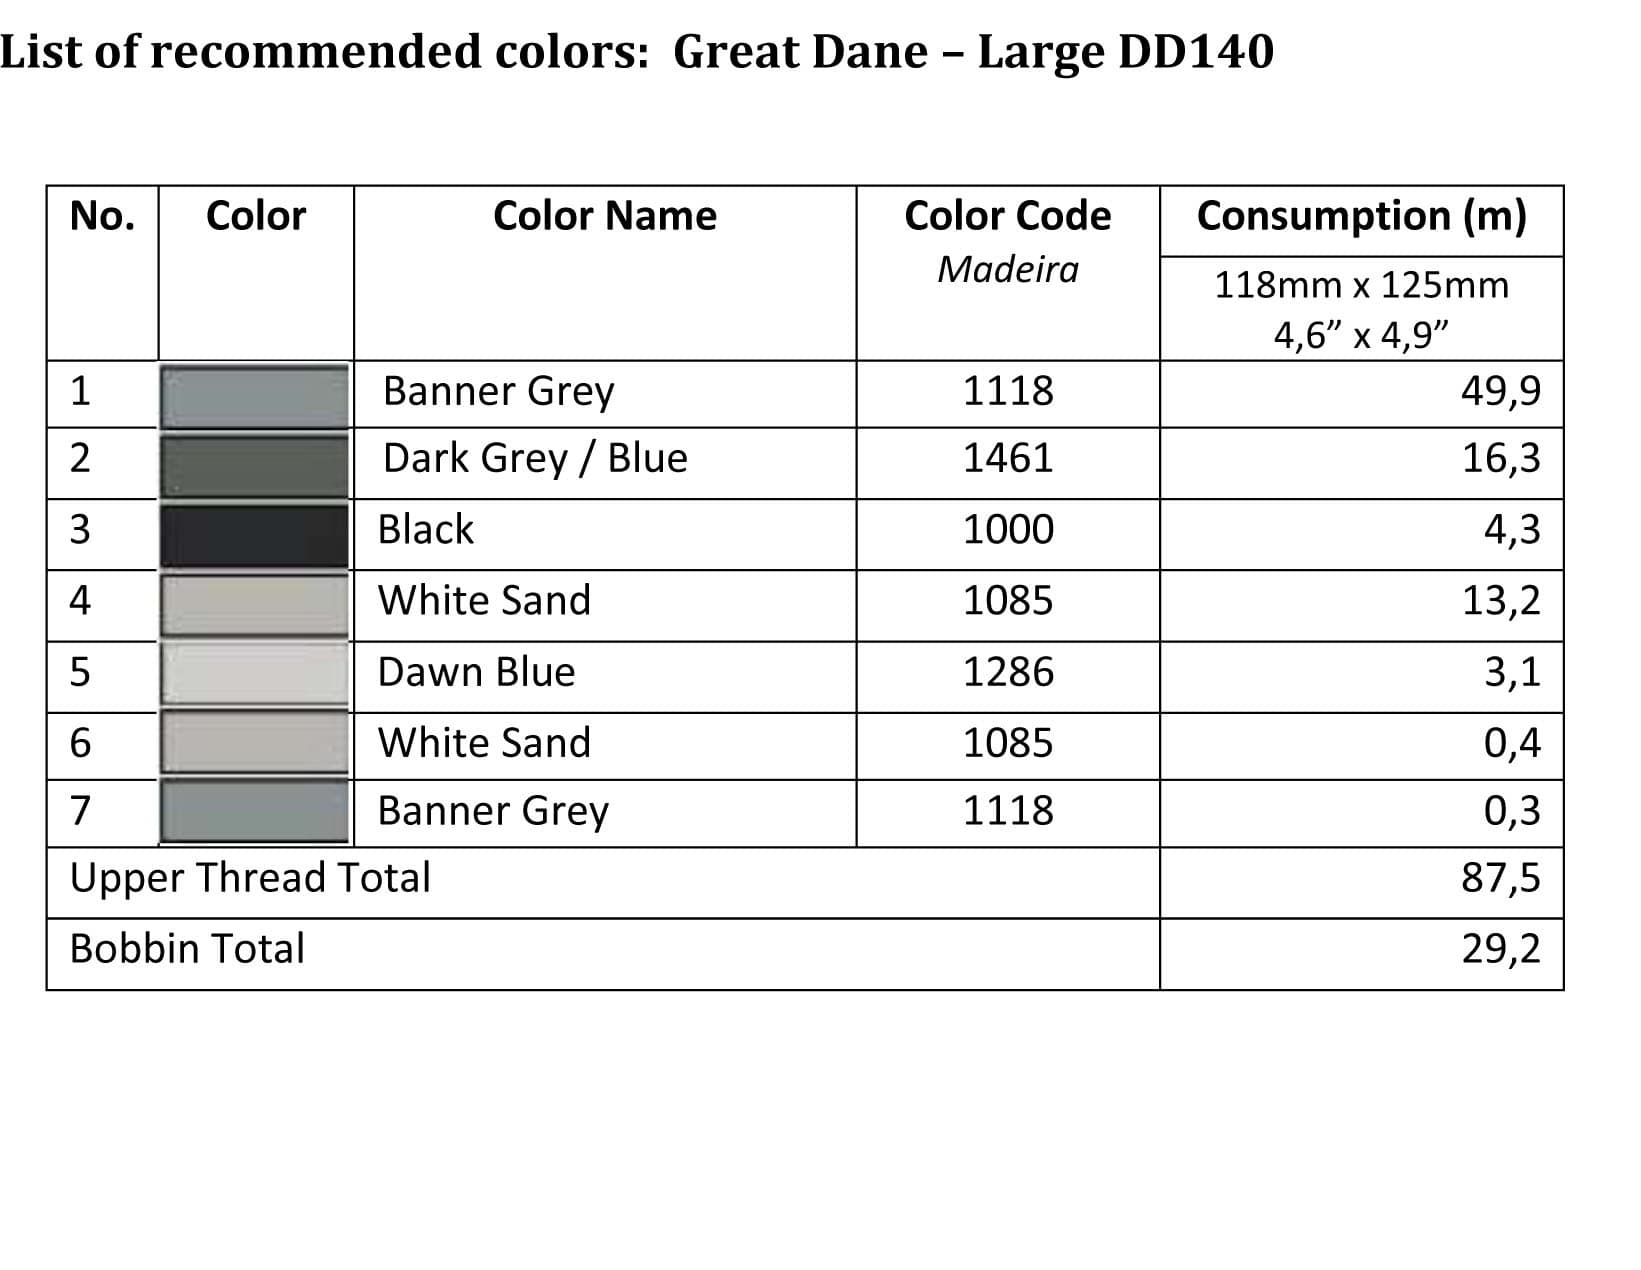 List of recommended colors - LargeDD140